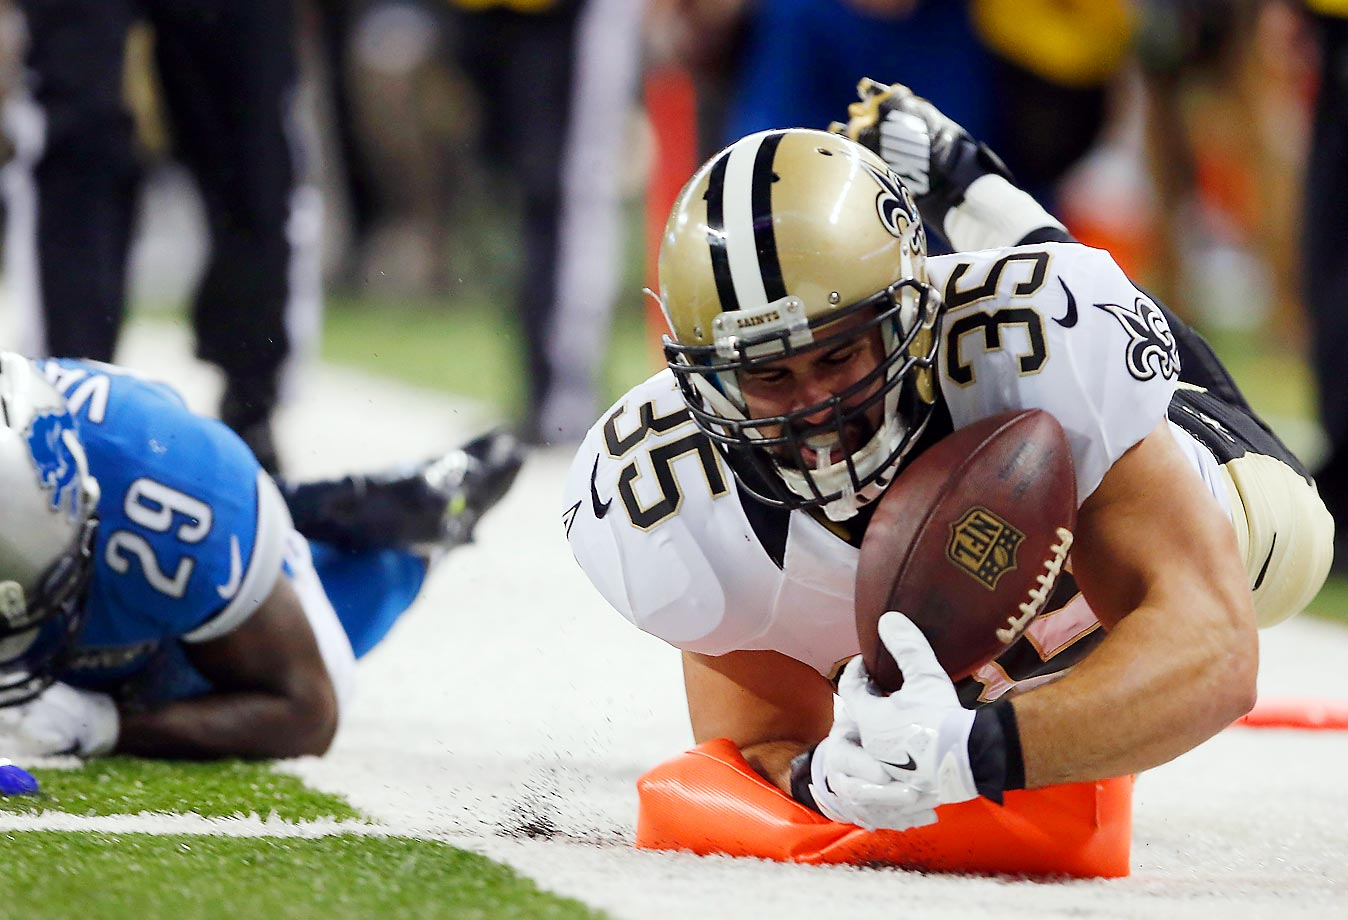 Austin Johnson of the New Orleans Saints dives for a second-quarter touchdown against the Detroit Lions. The Lions came from behind to win 24-23.